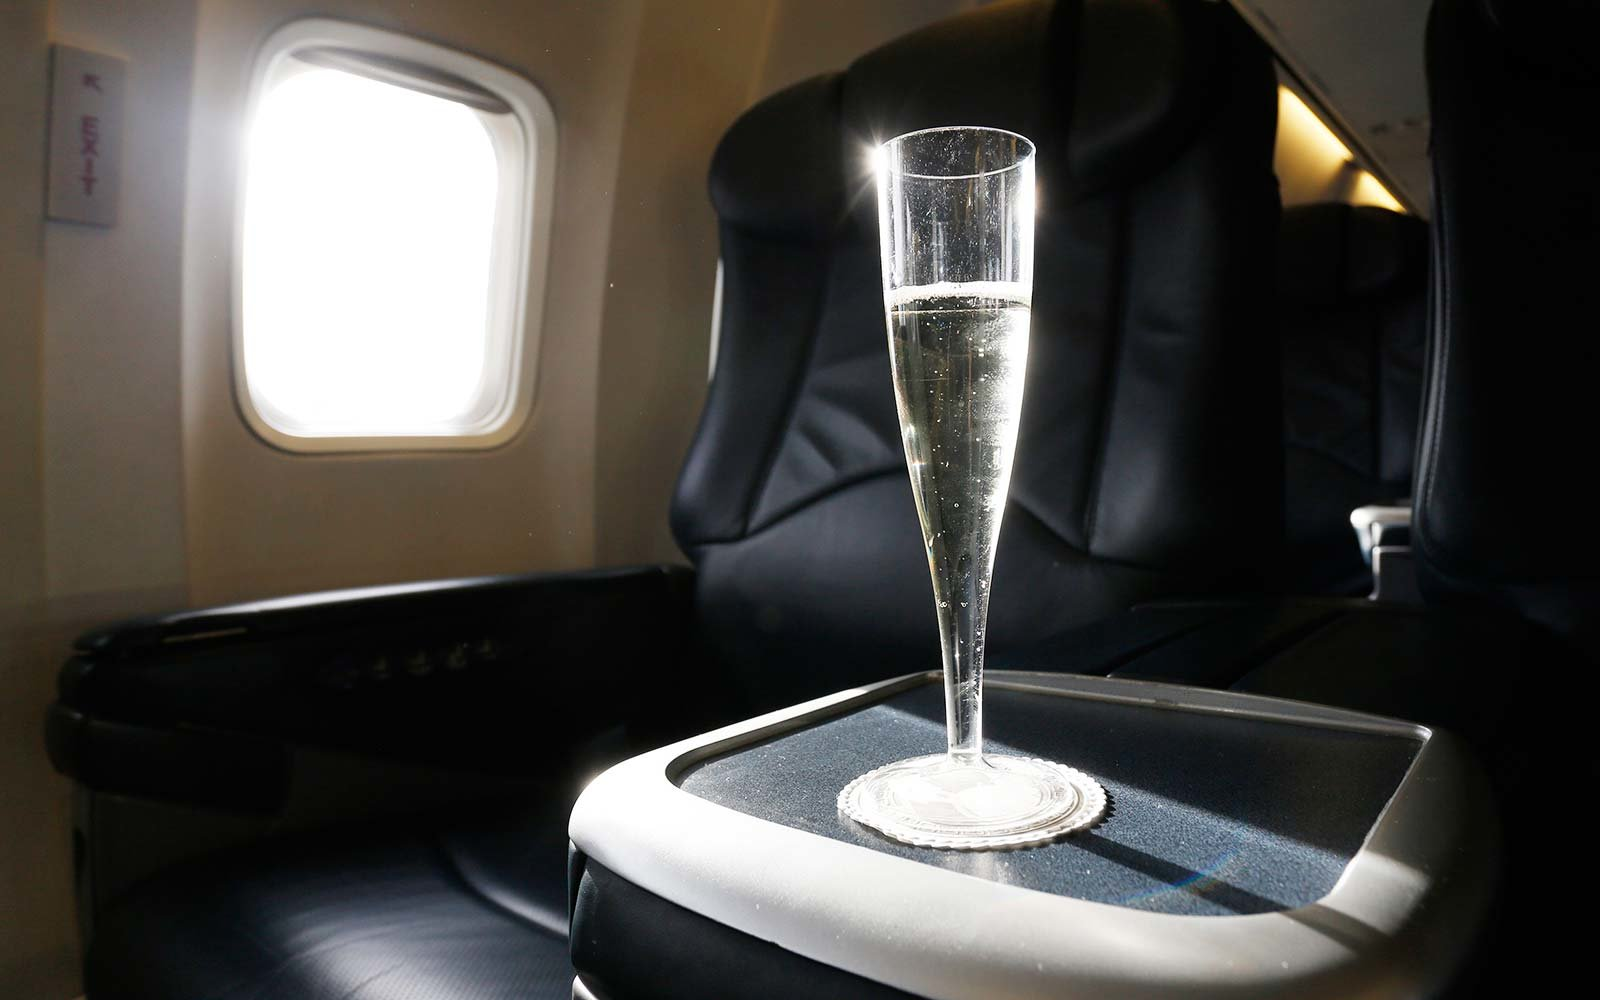 Passenger who wanted champagne on plane sues over getting cheap wine